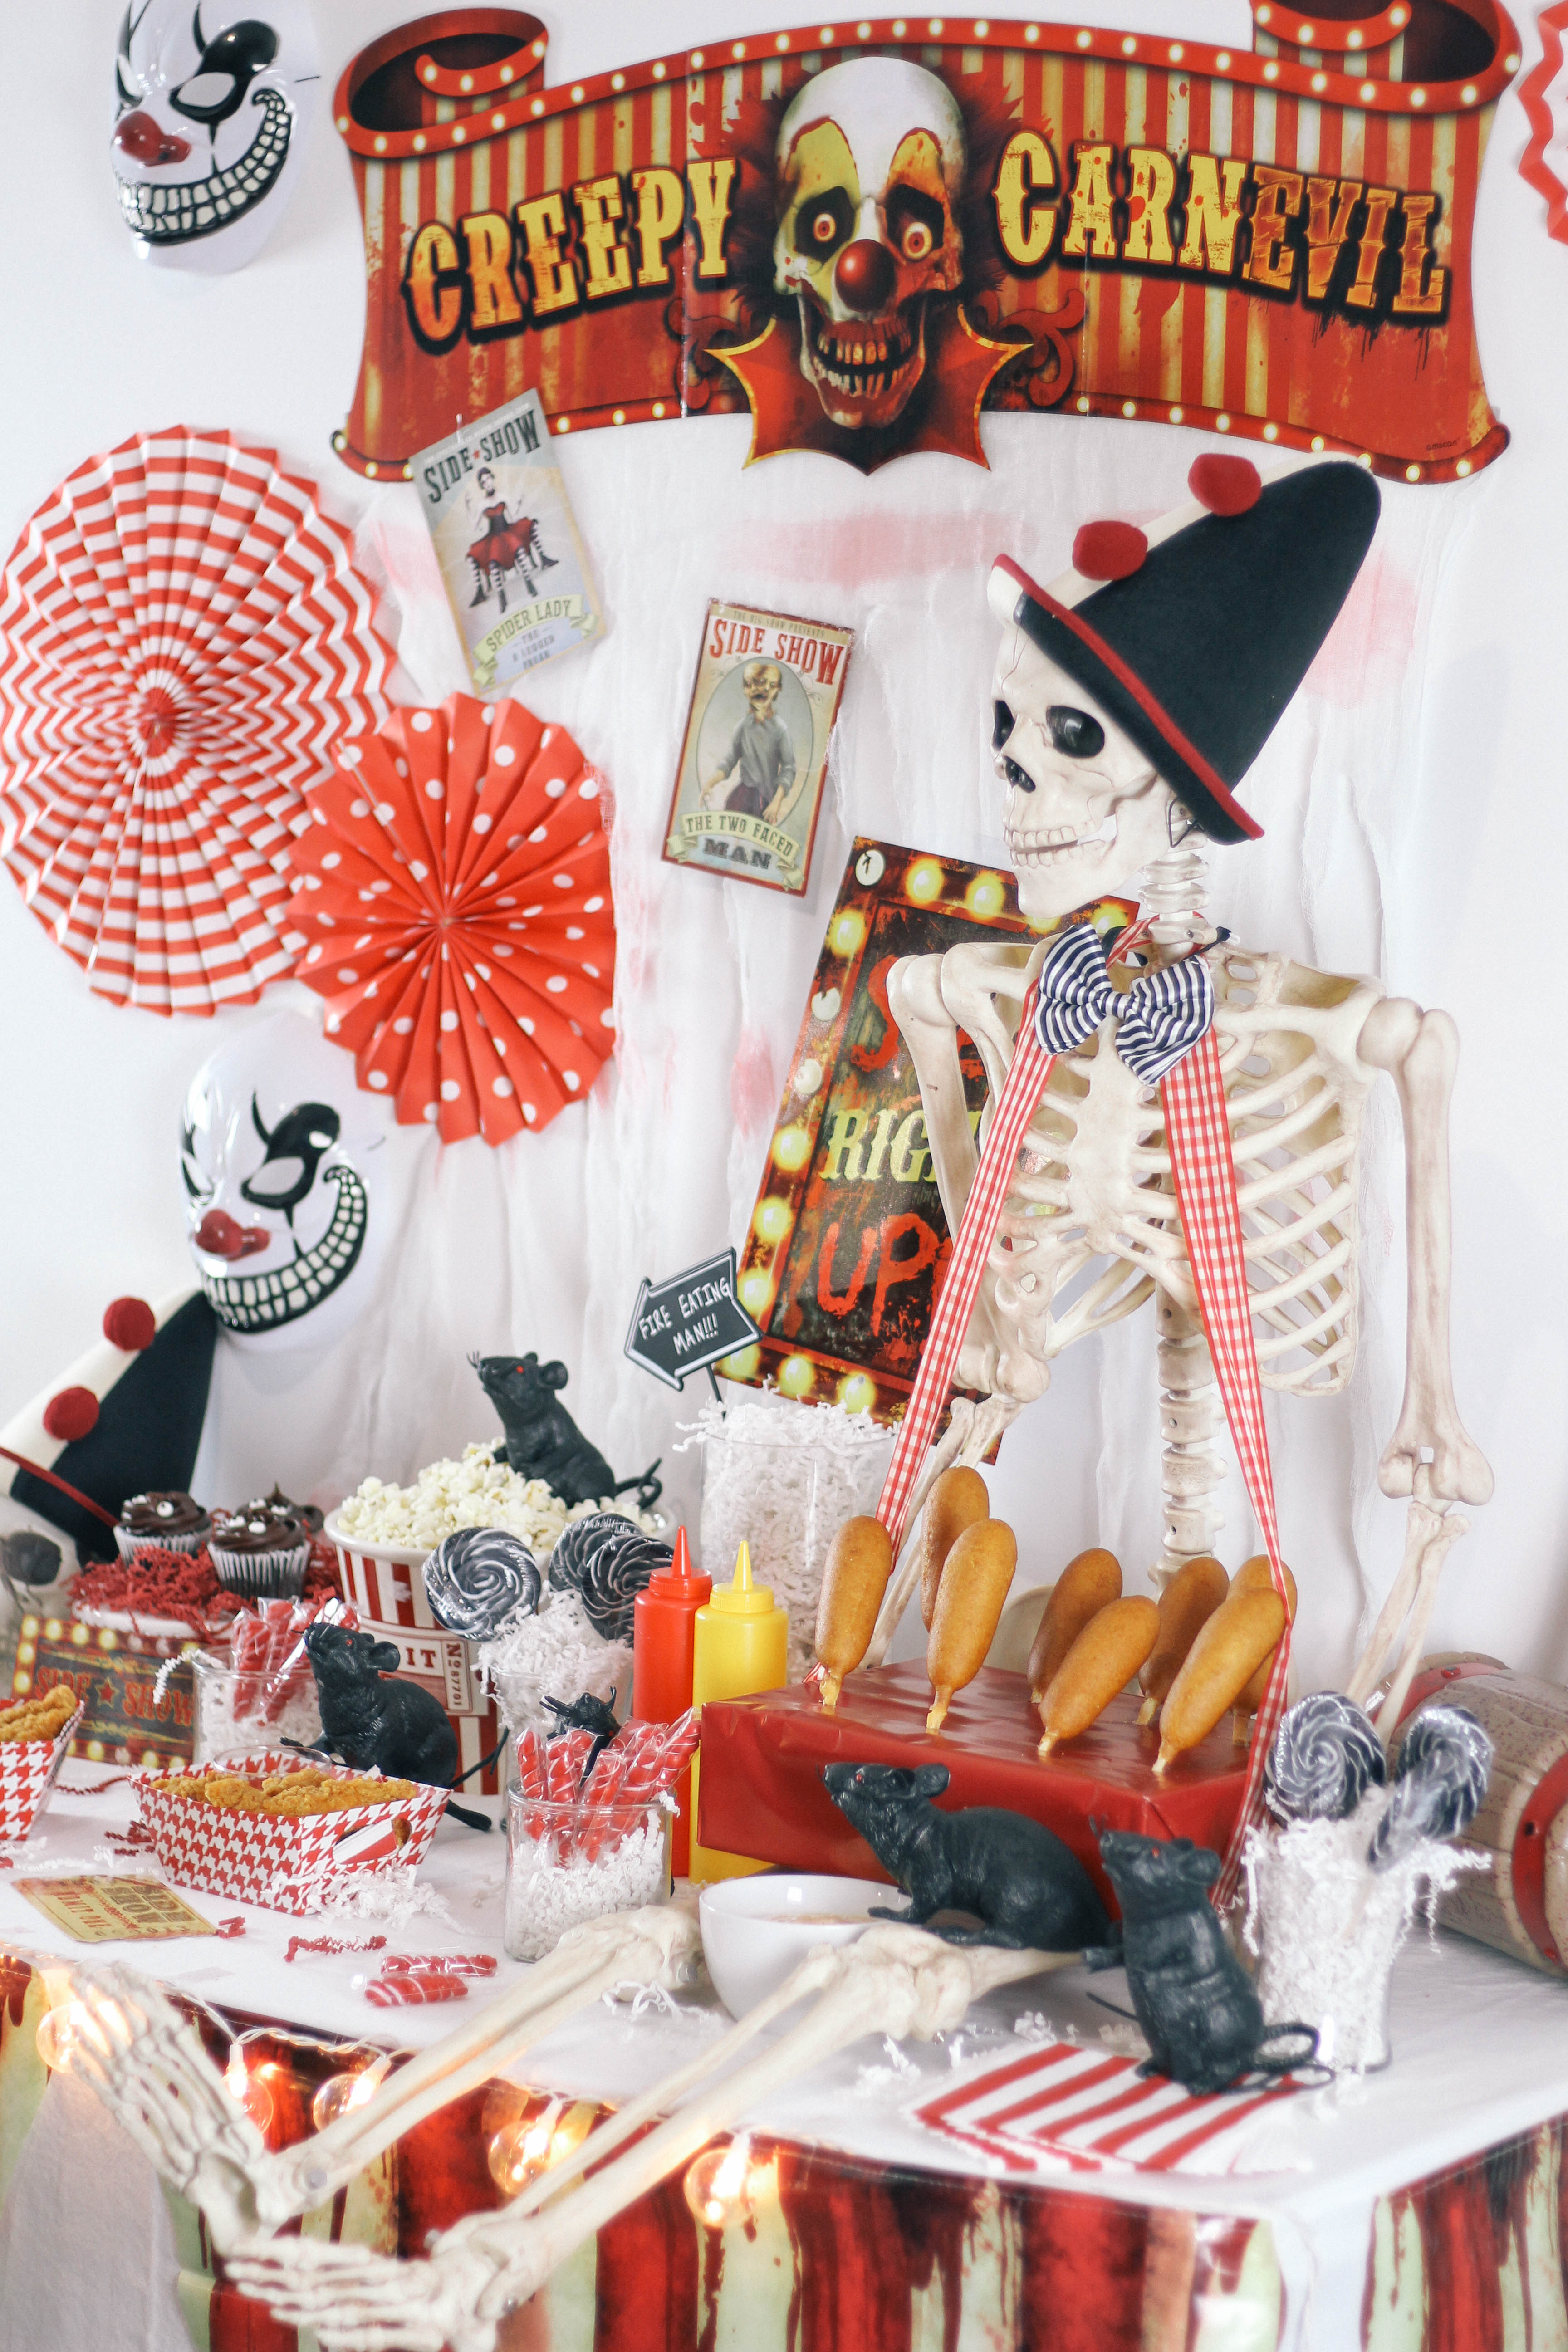 Halloween-Carnival-CarnEVIL-themed-party-tablescape-12